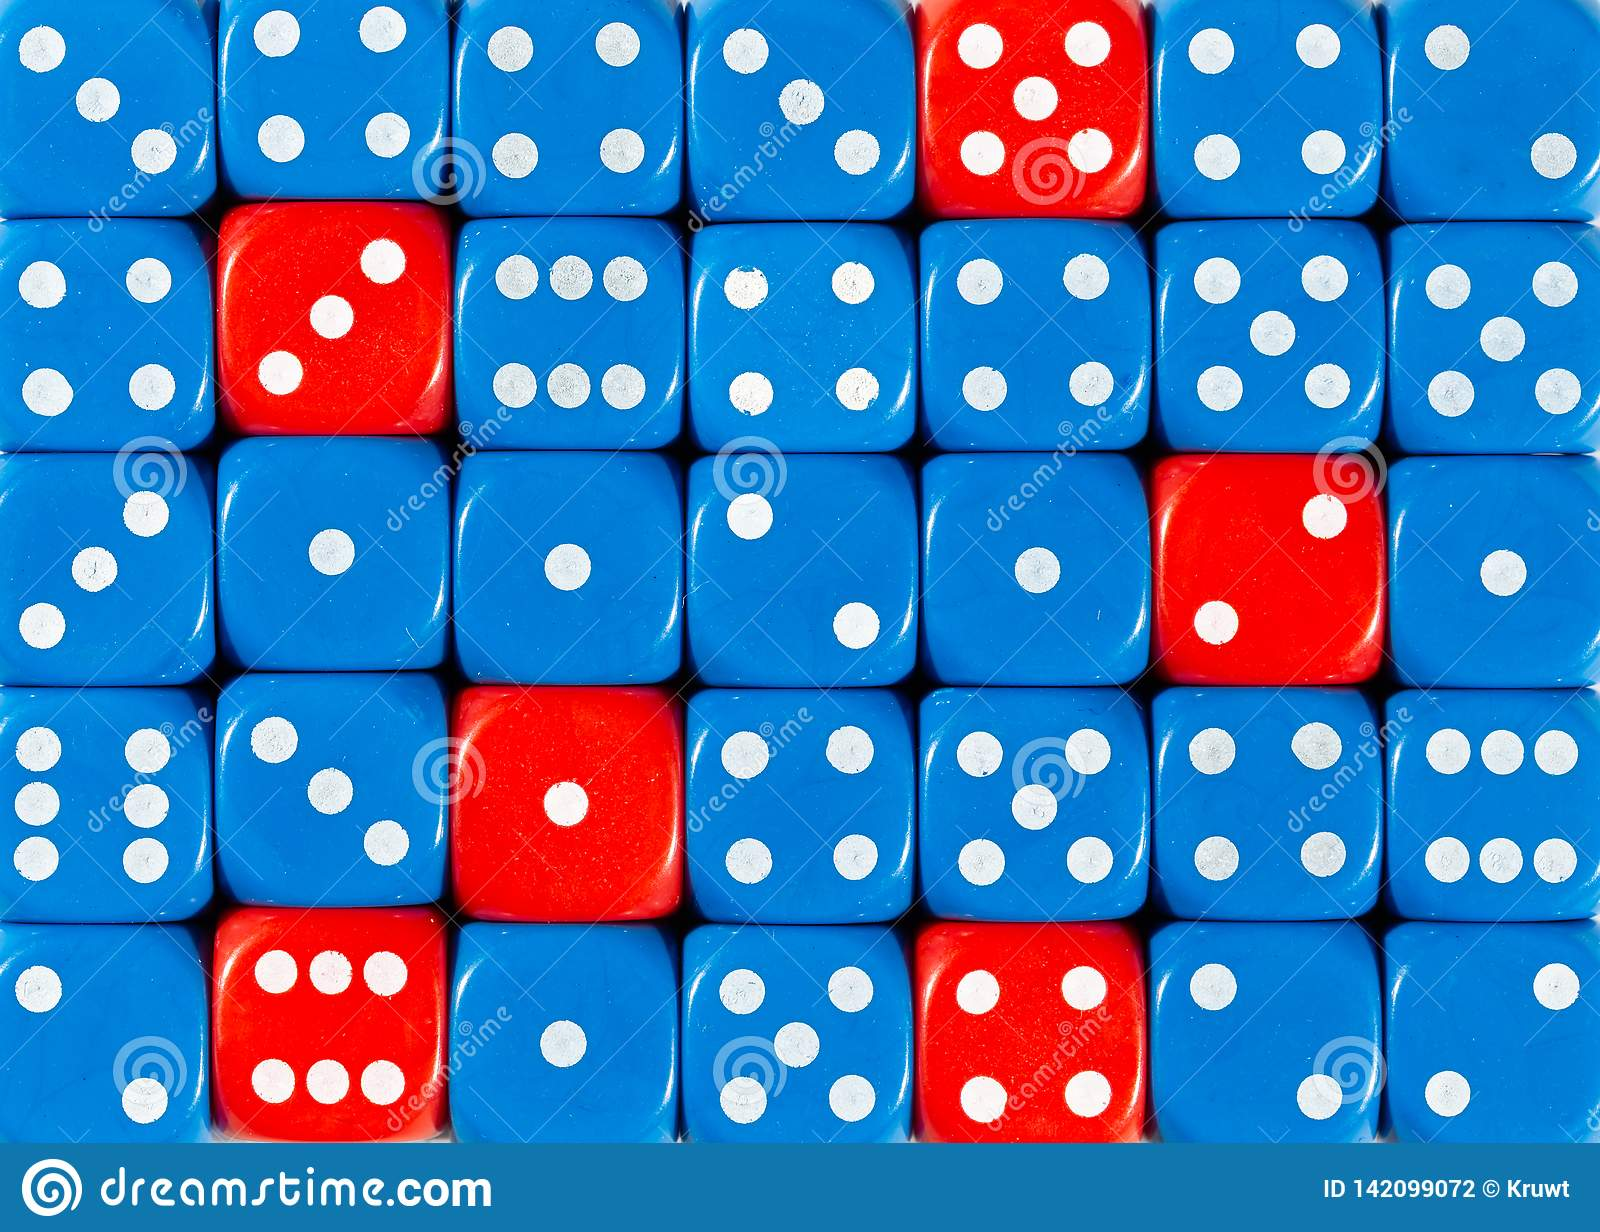 Background of random ordered blue dices with six red cubes